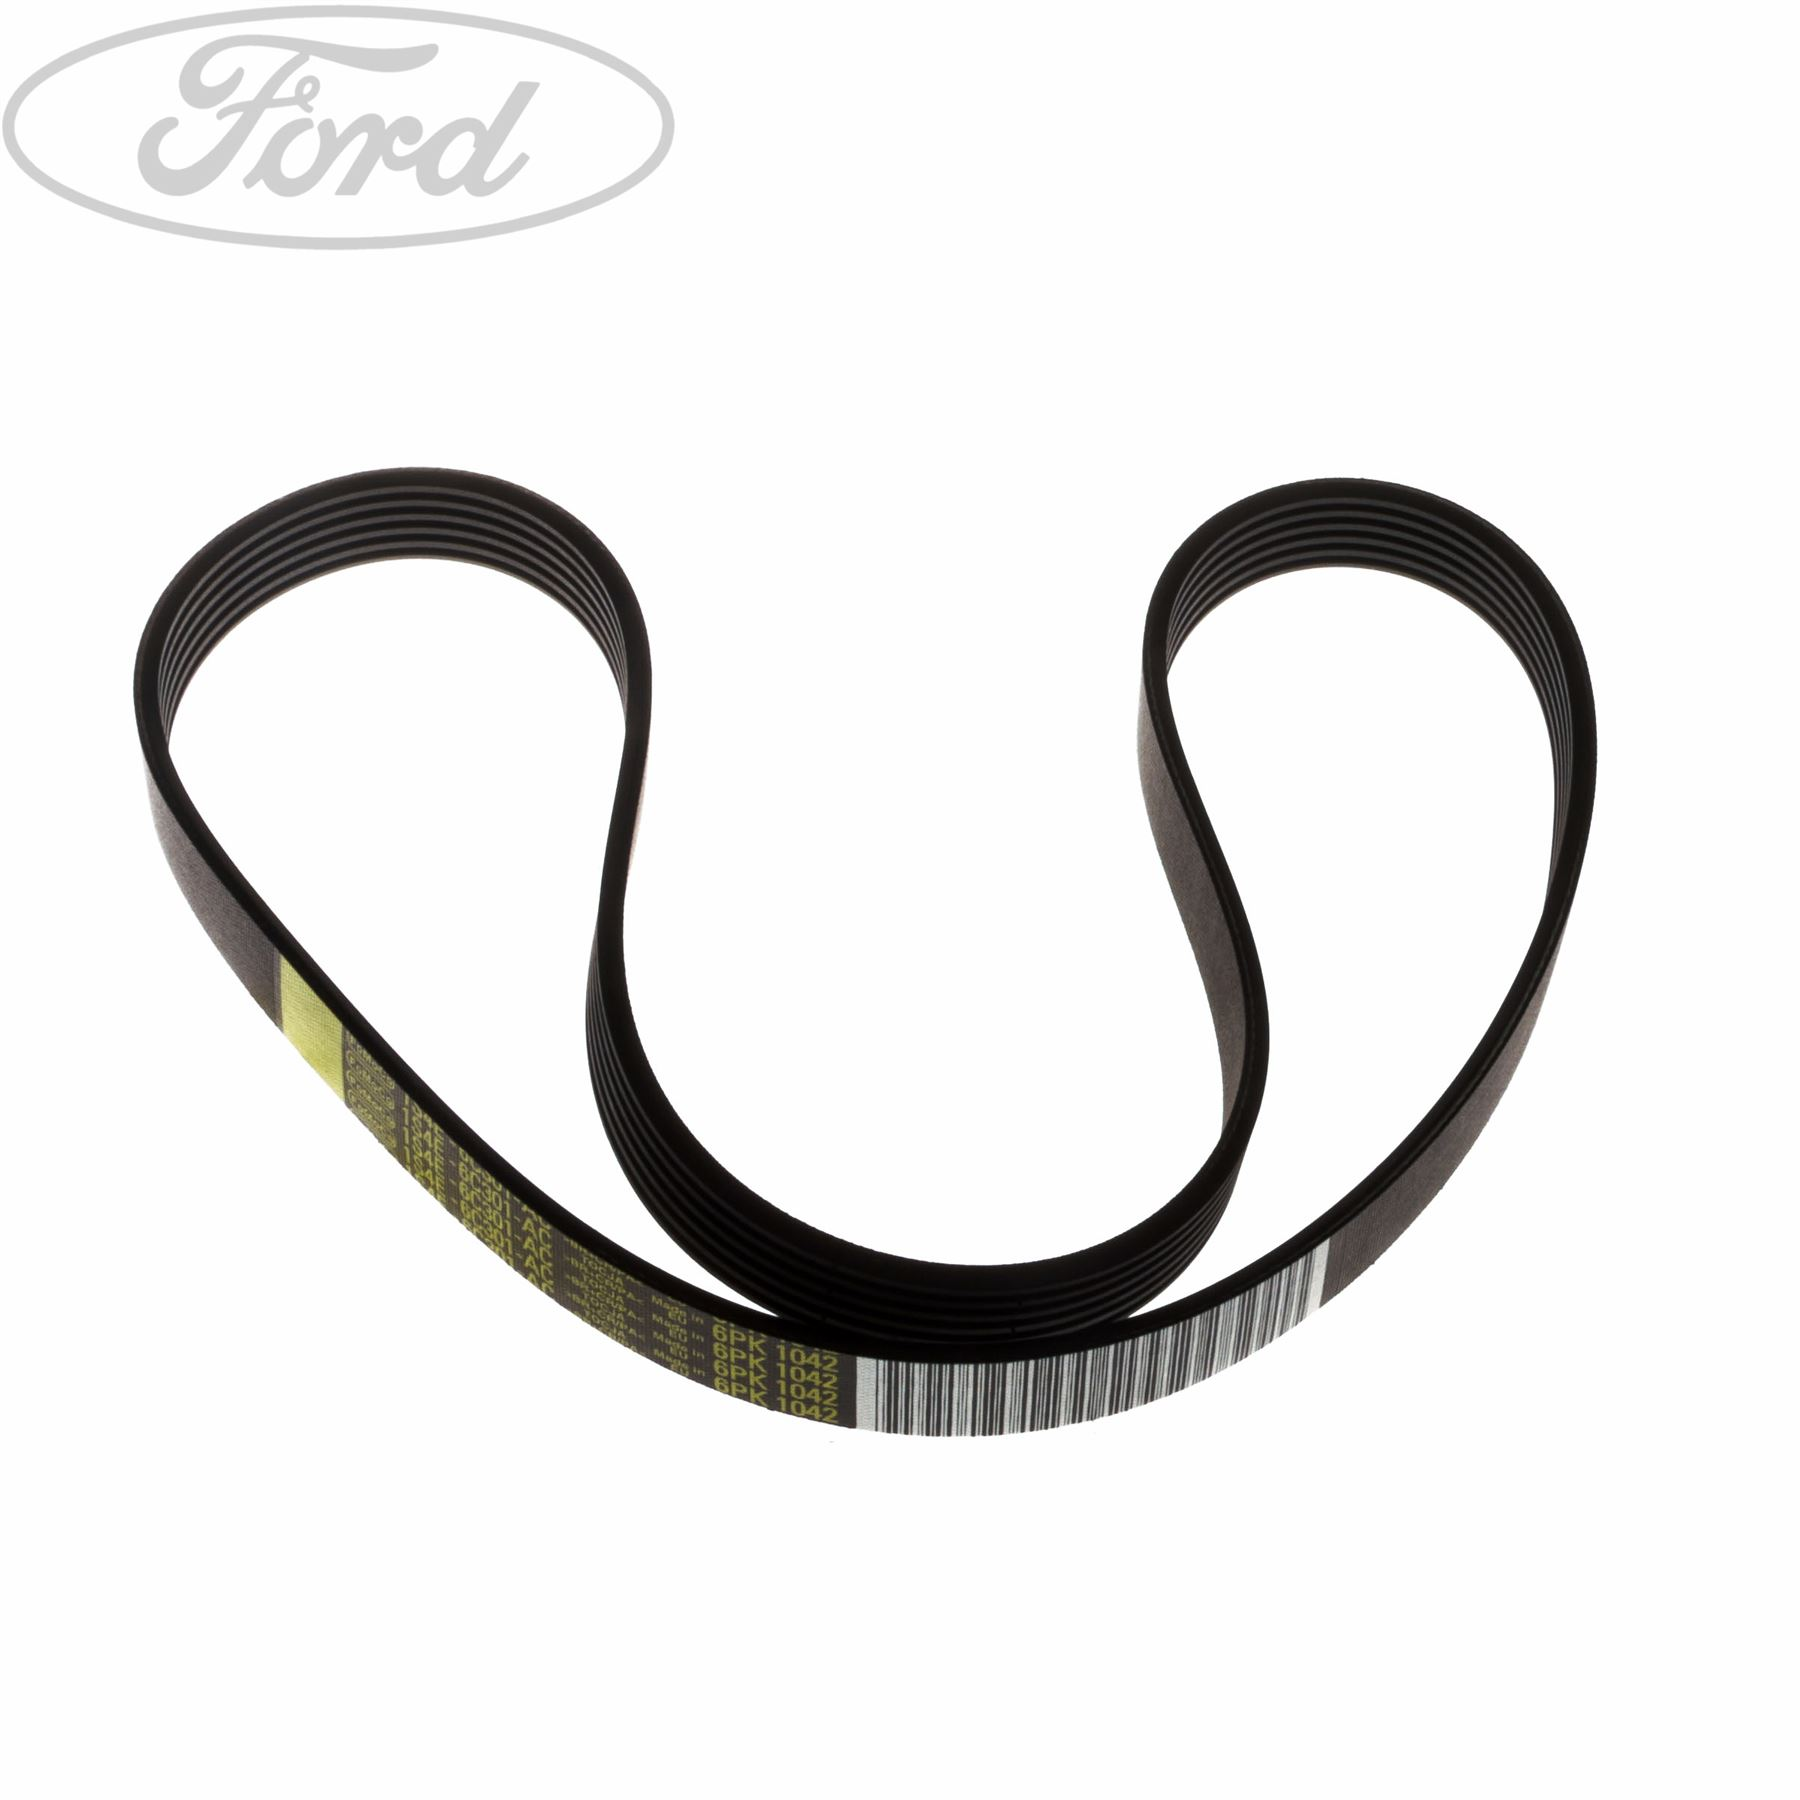 hight resolution of details about genuine ford focus mk1 fiesta mk6 fusion drive belt kit 1843766